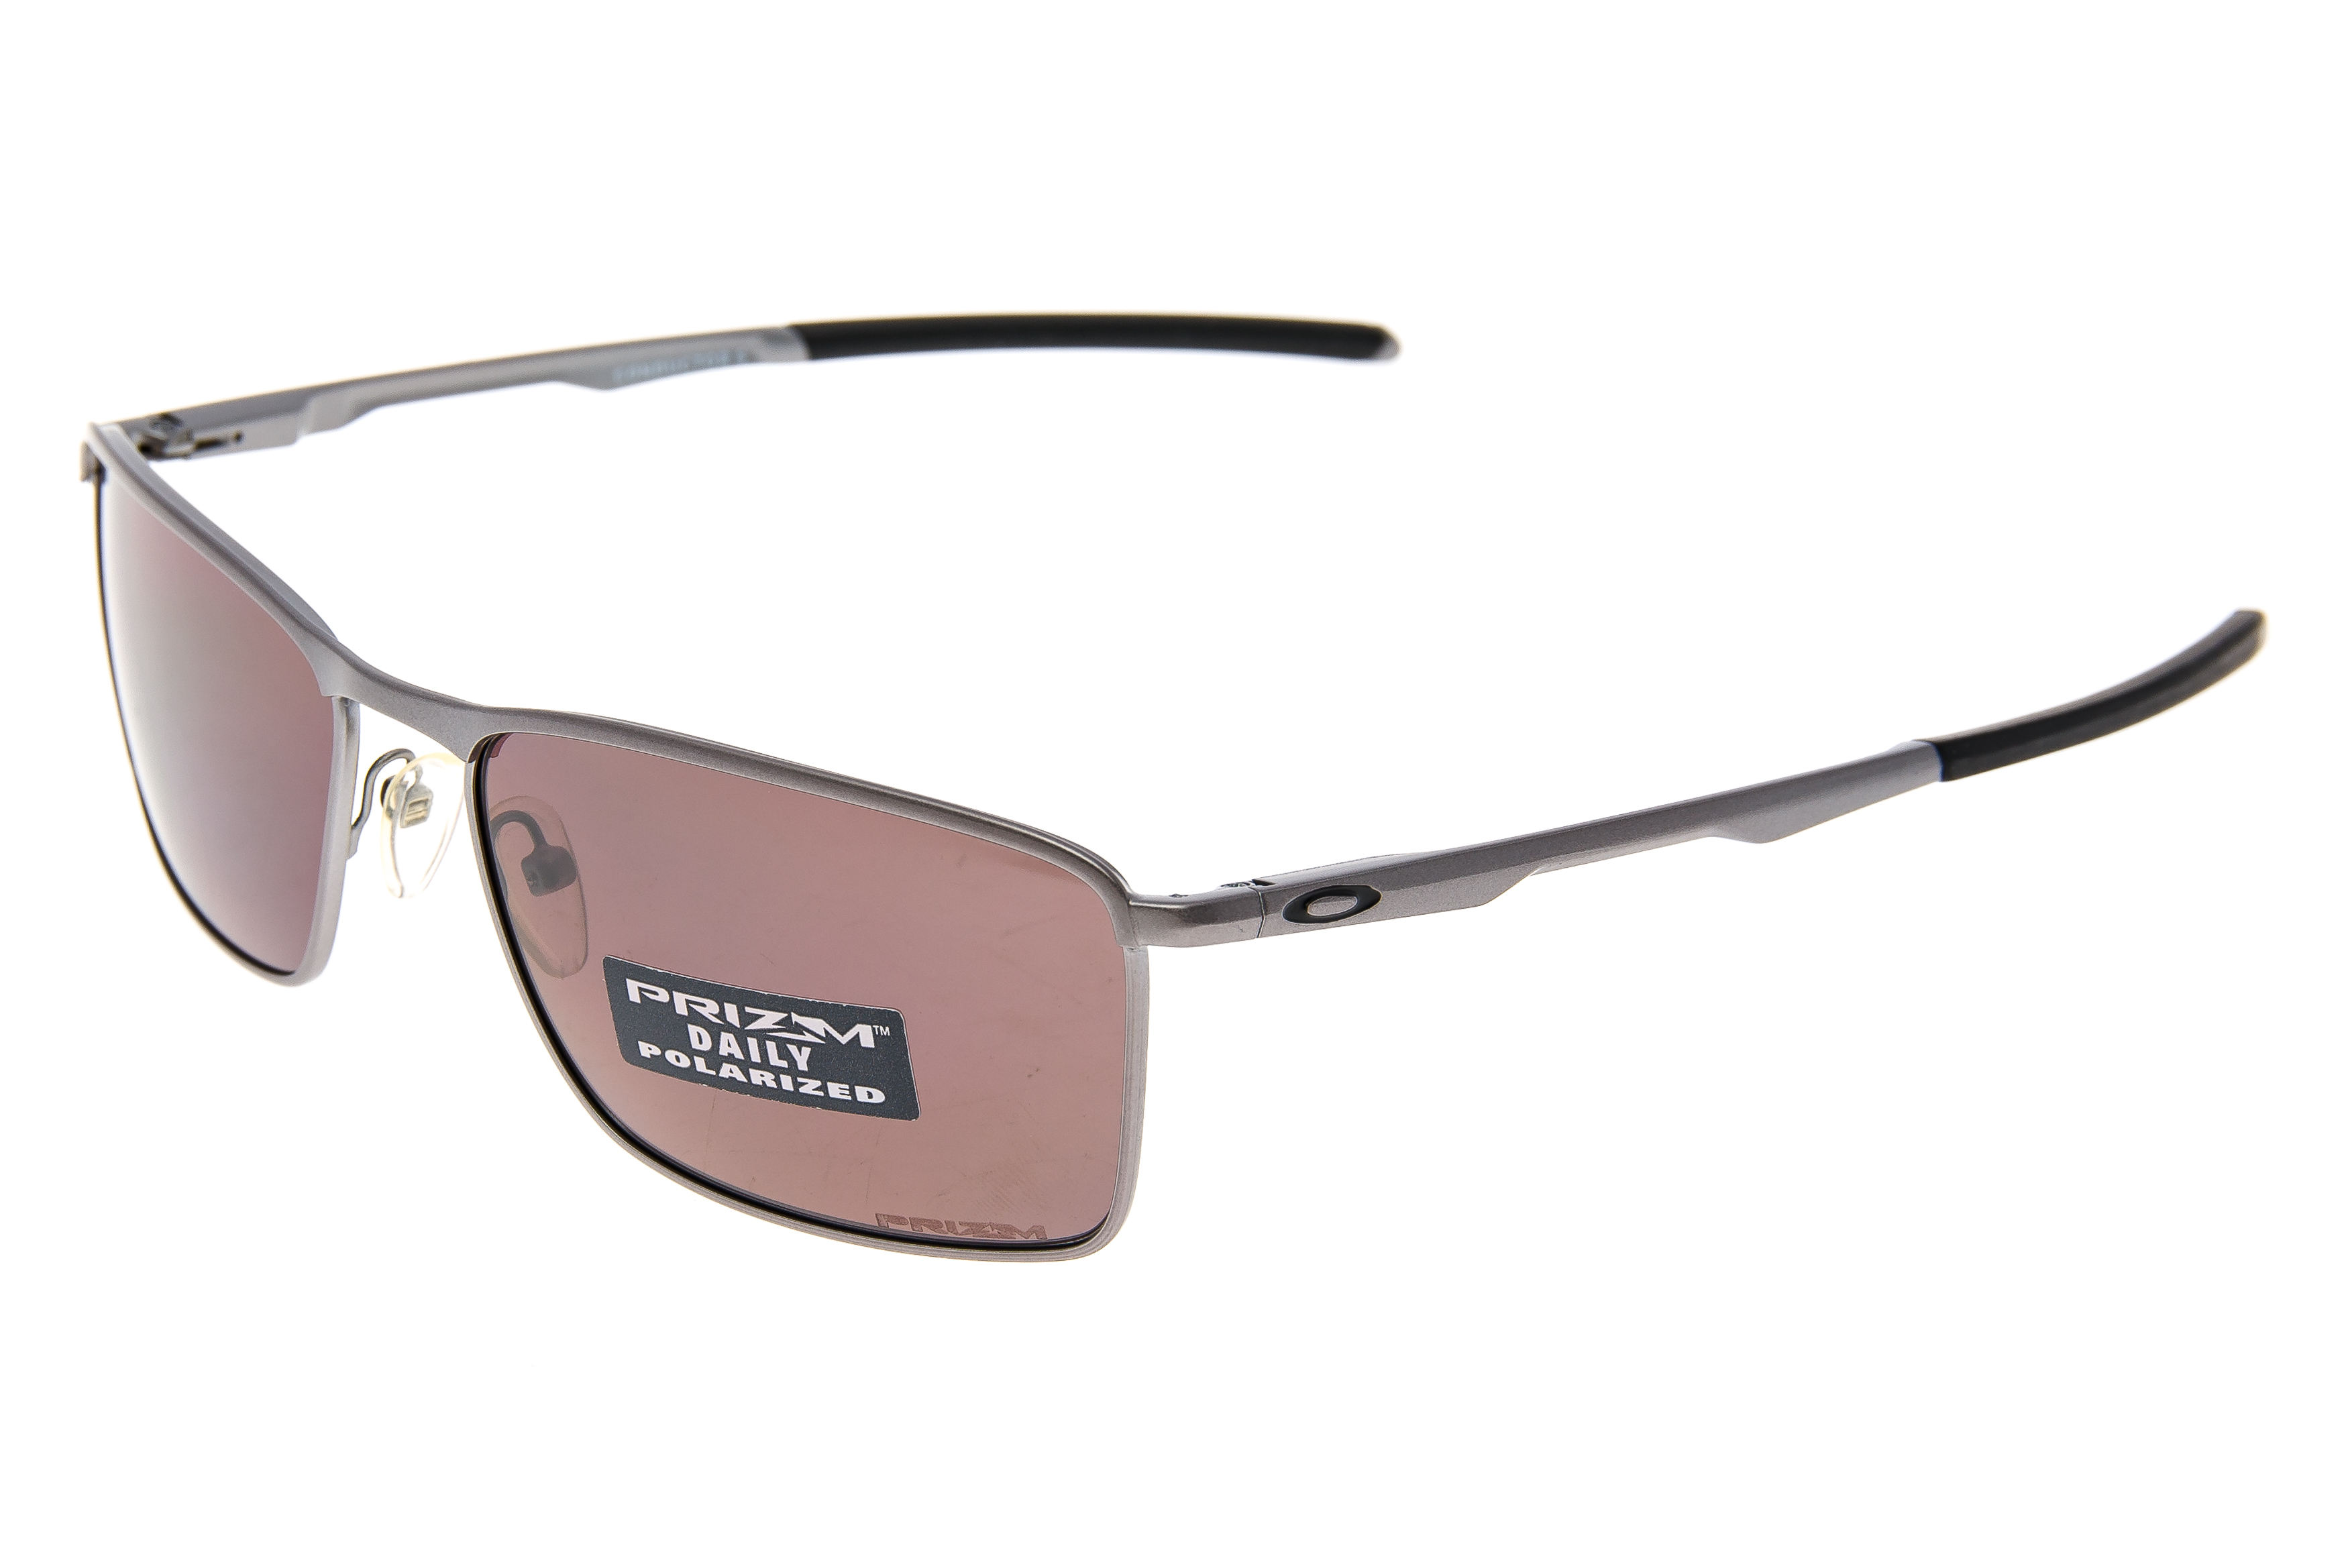 1483e8c15d5 Details about Oakley Conductor 6 Sunglasses Silver Frame Prizm Daily  Polarized Lens